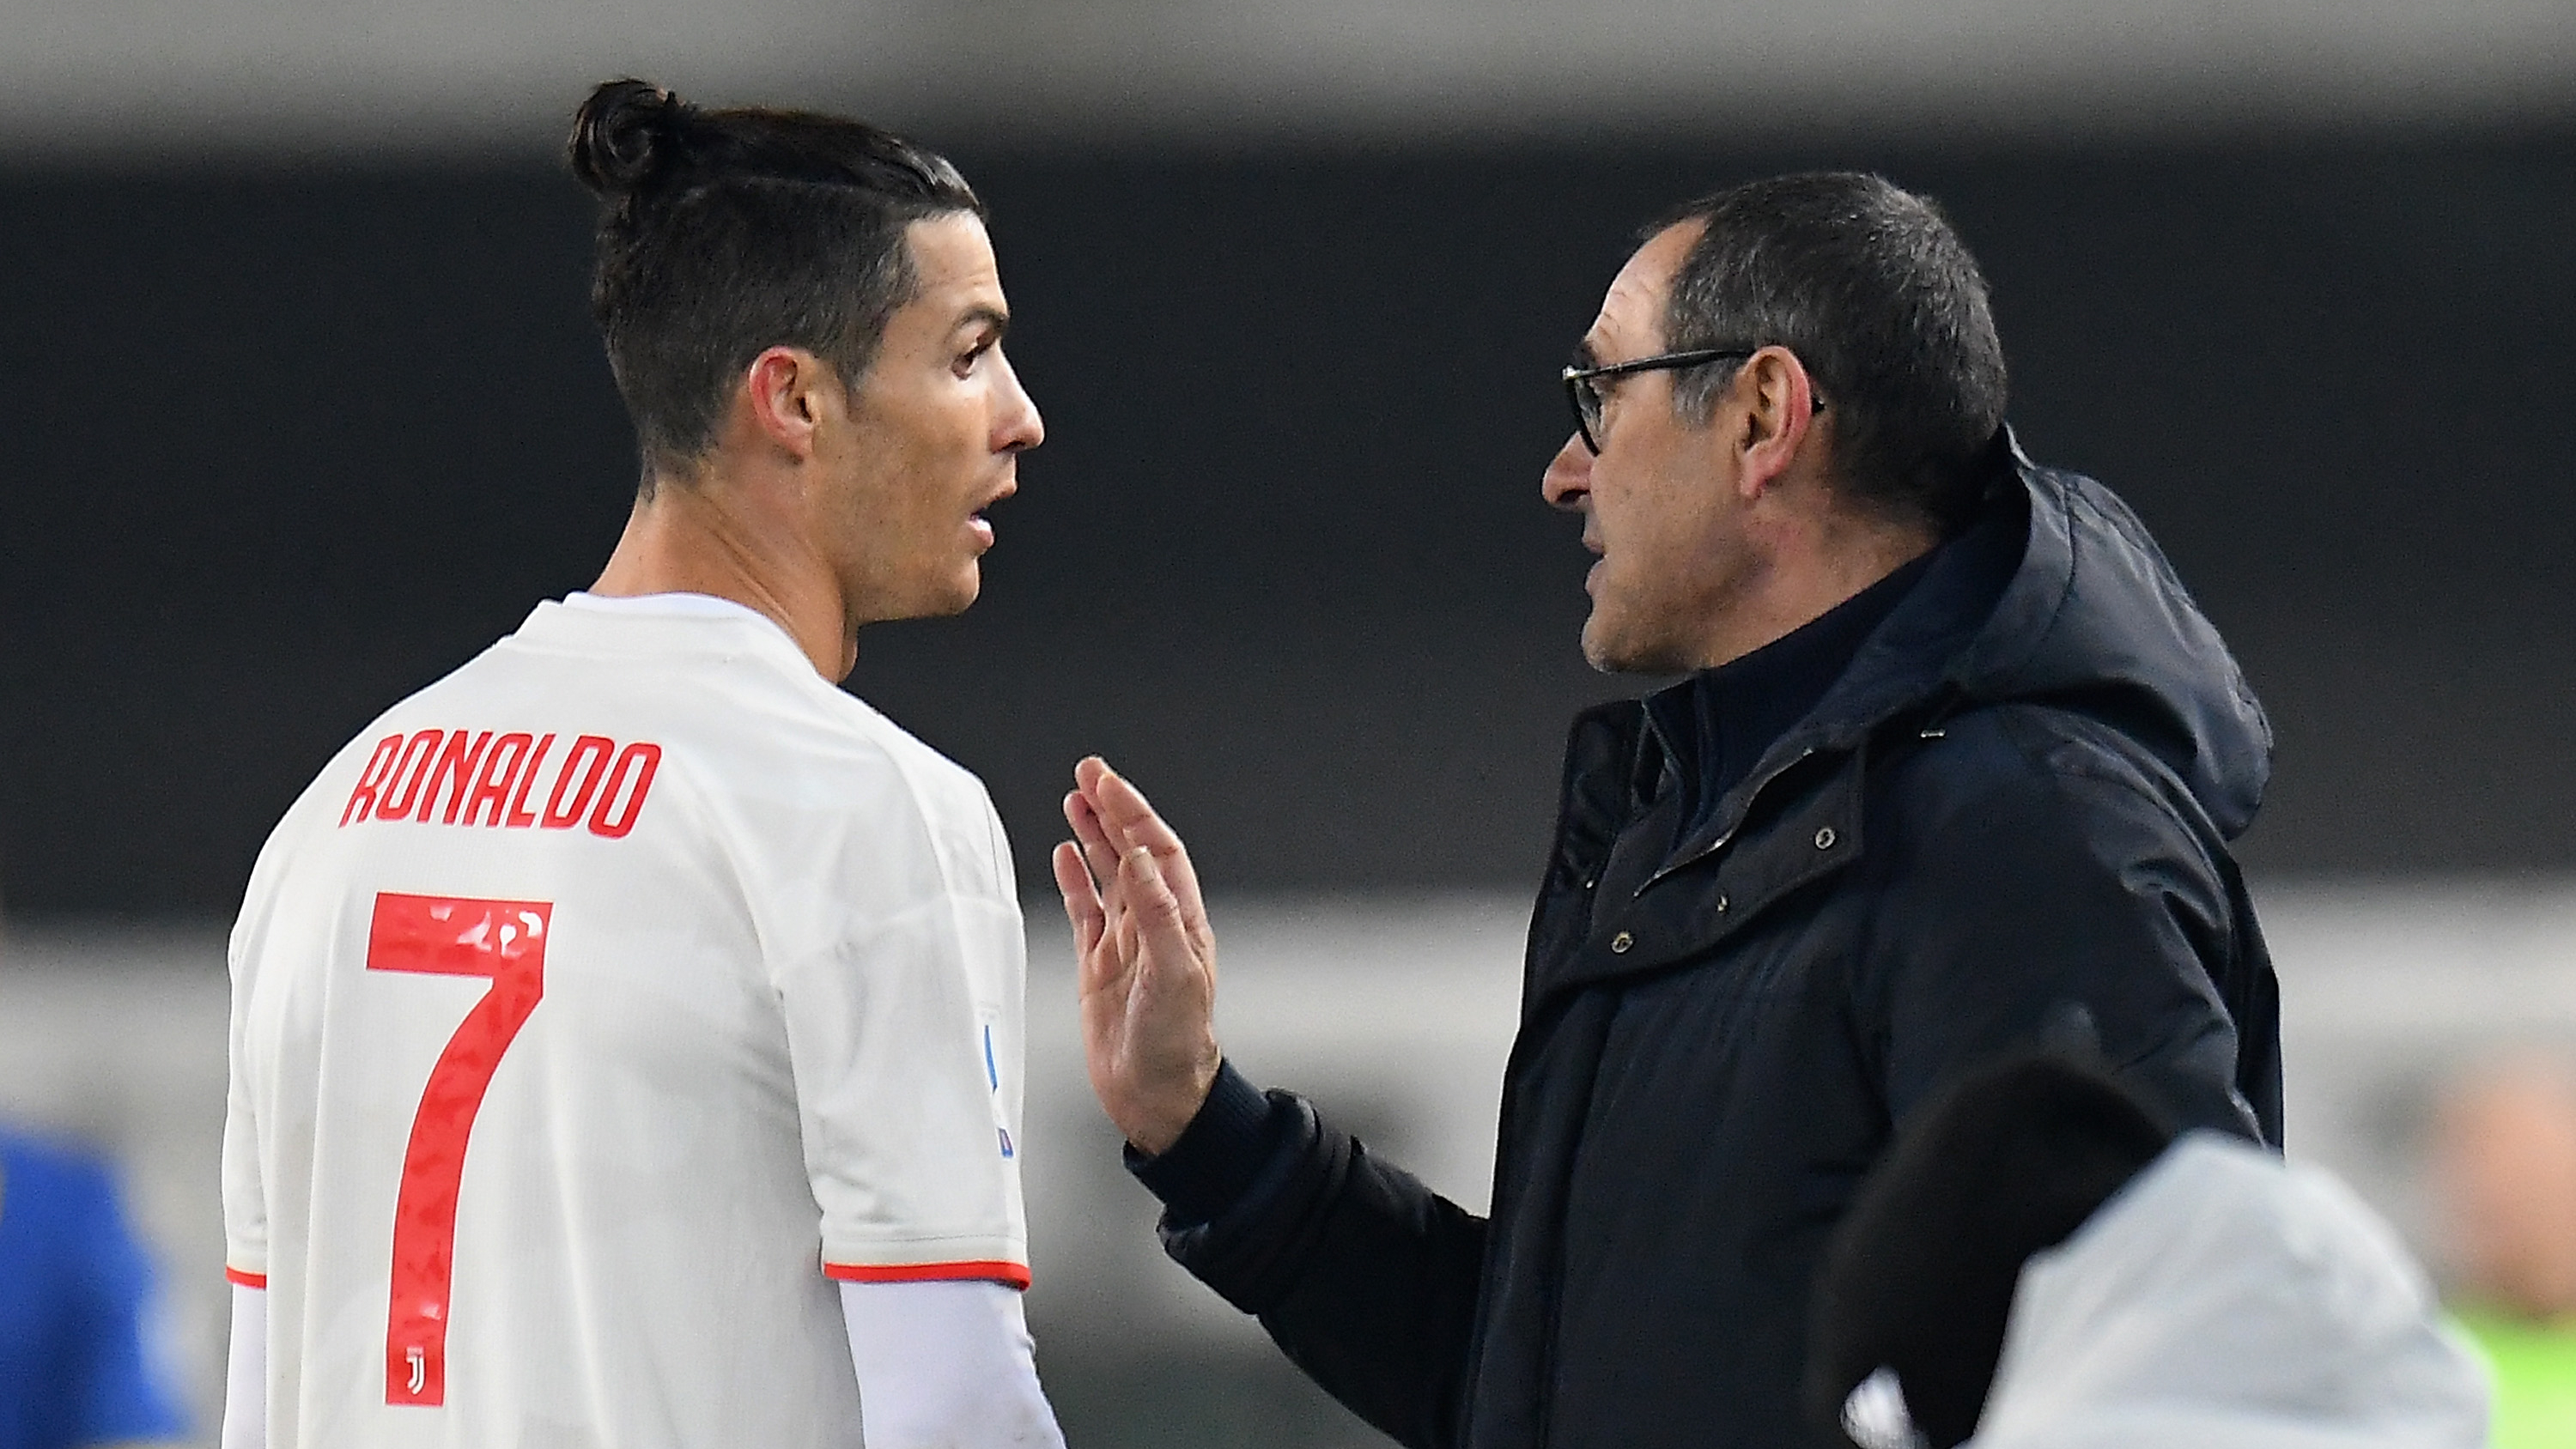 Juventus should give Ronaldo a 'gift' as he chases new milestones - Sarri